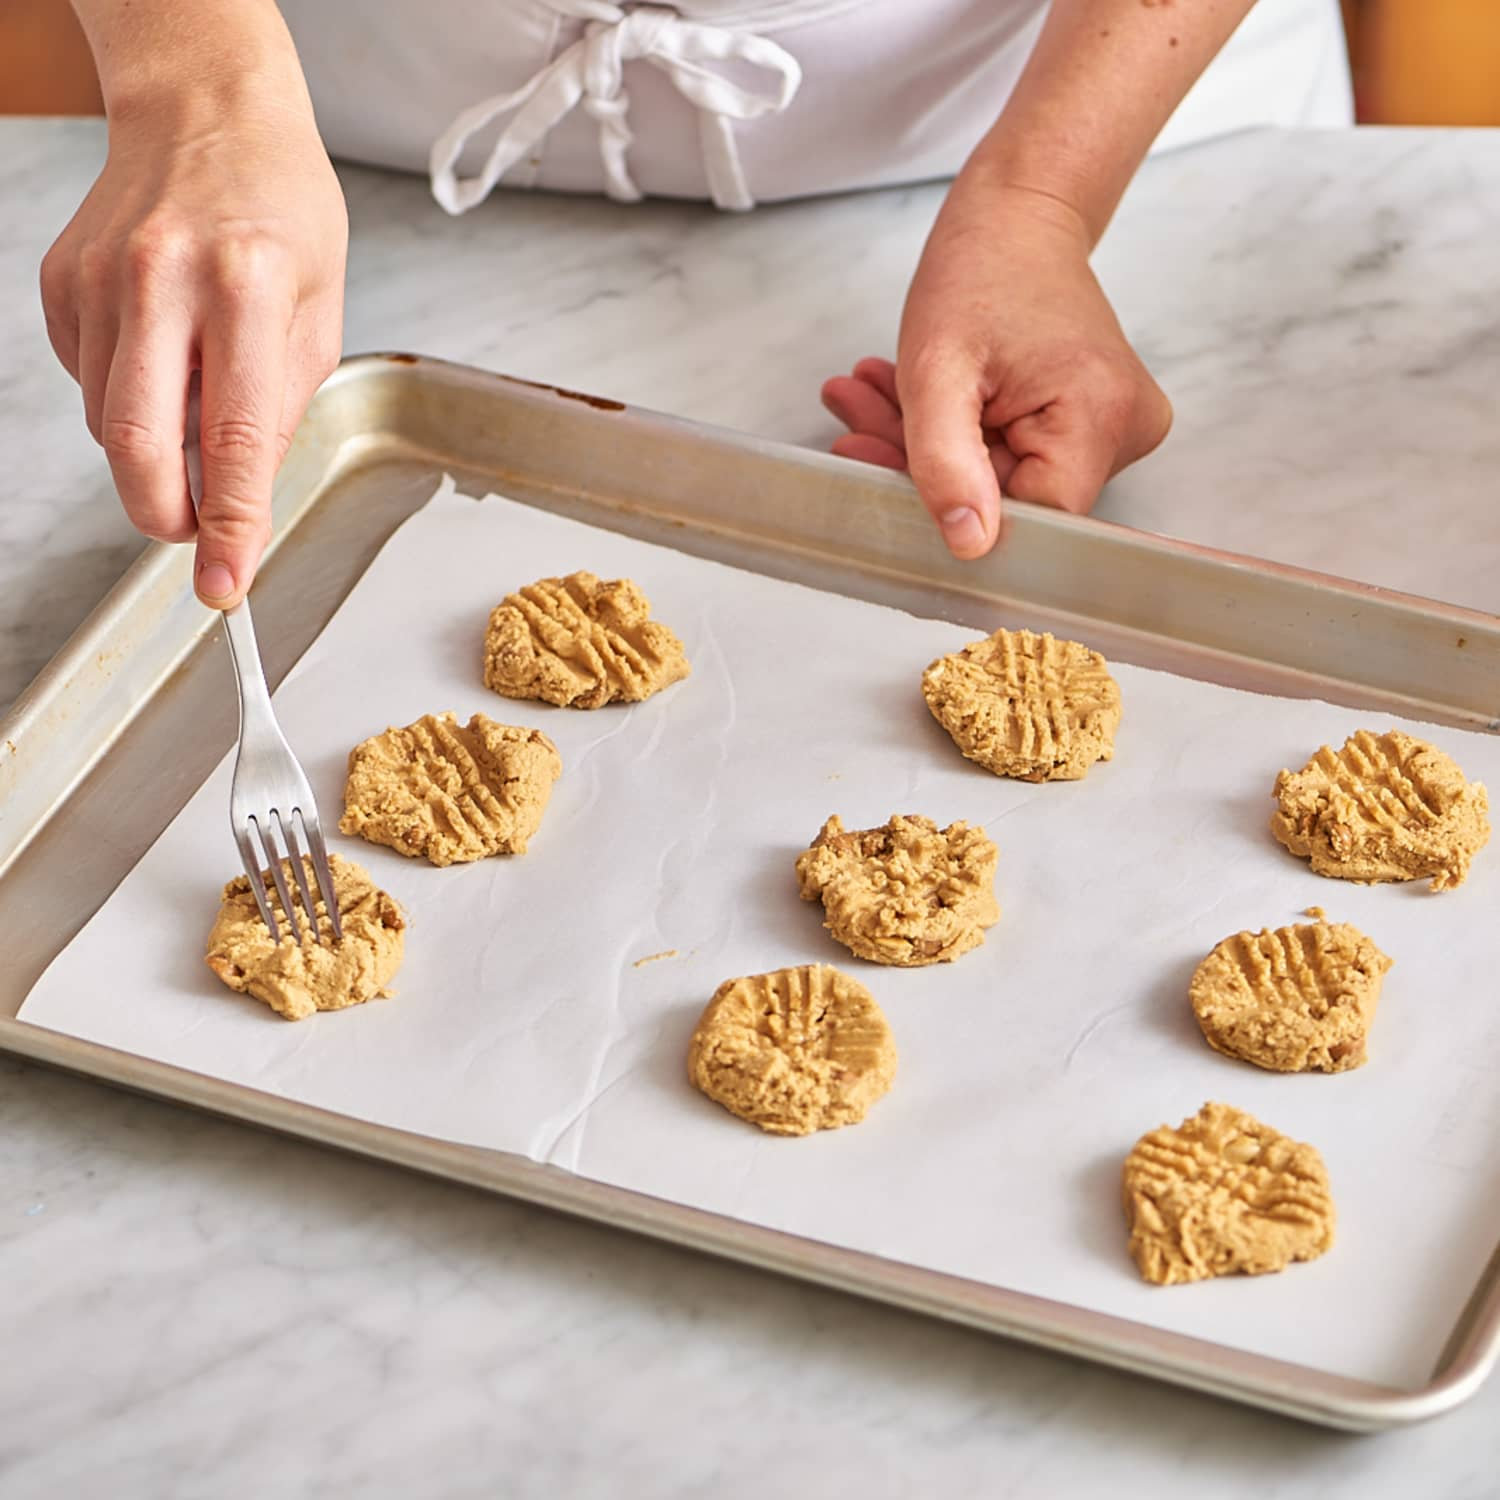 to organize your cookie sheets